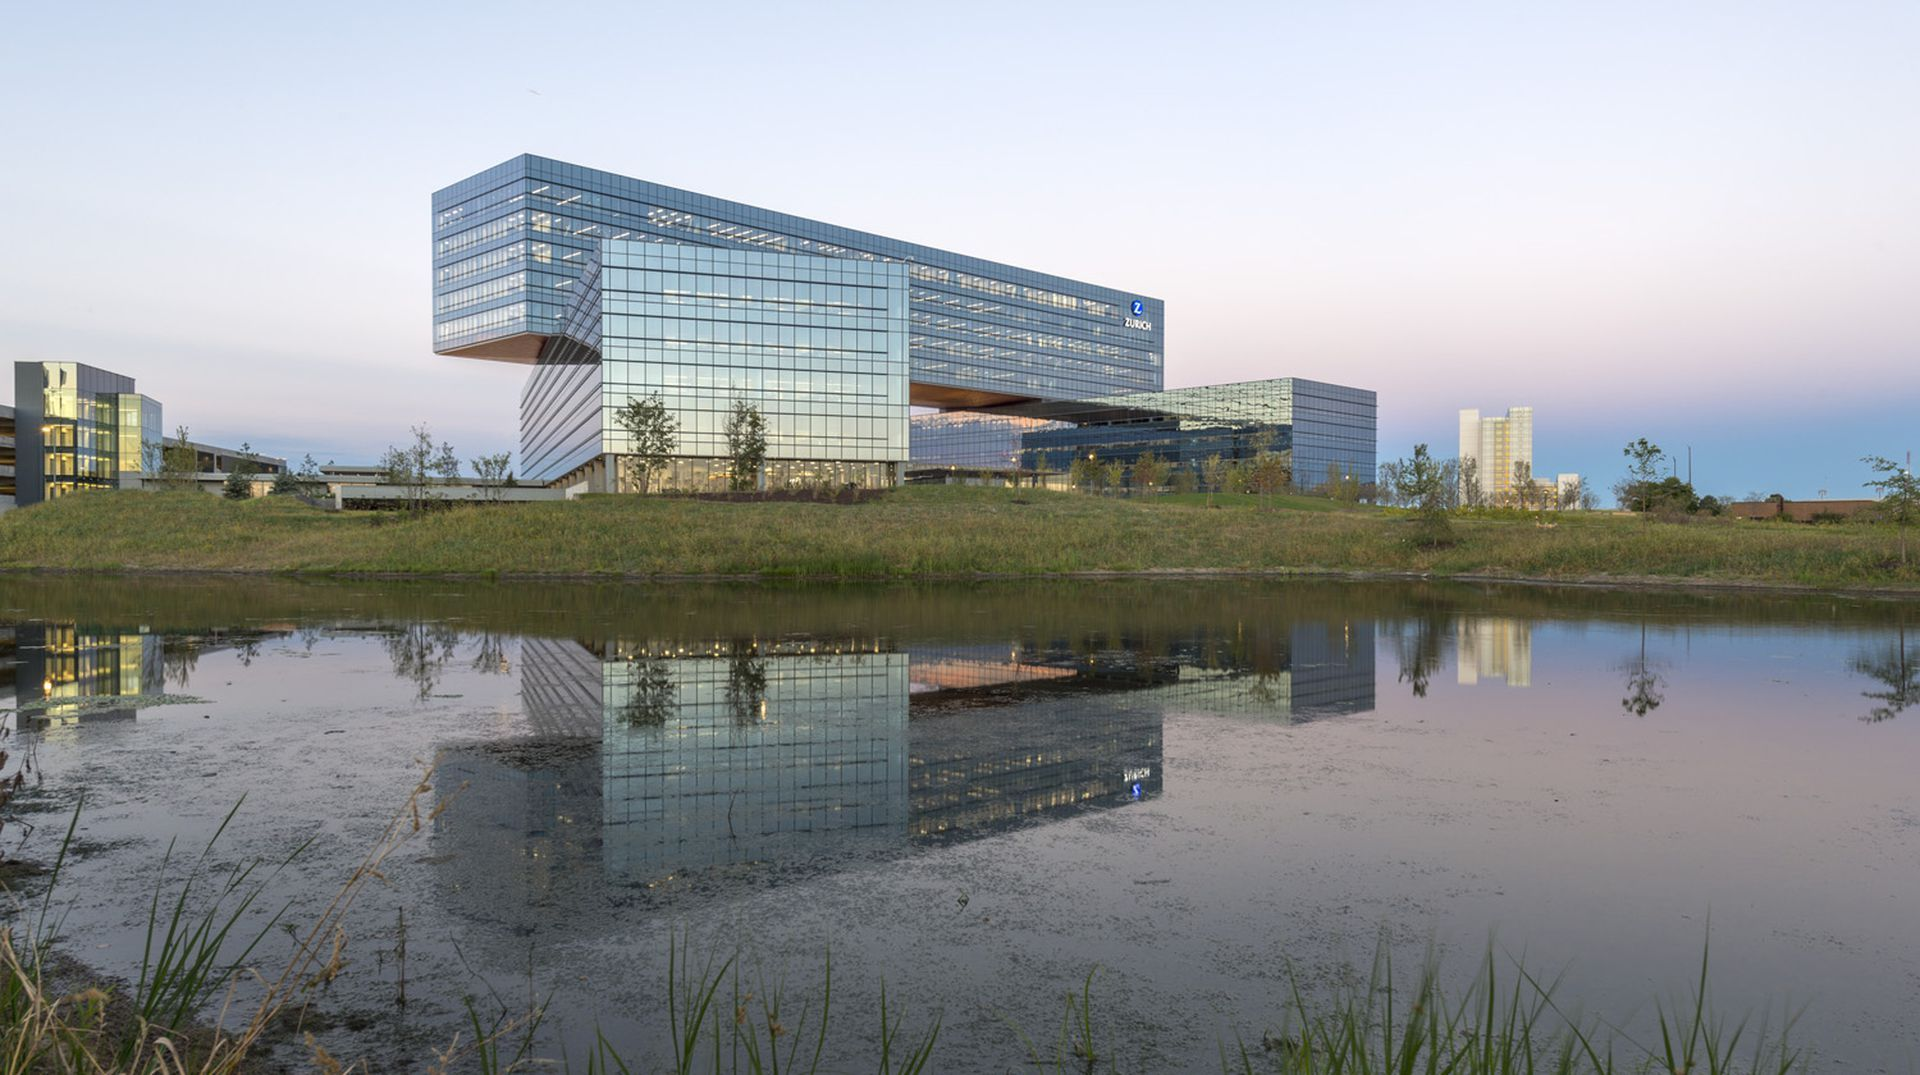 Zurich North America's new headquarters opens for business